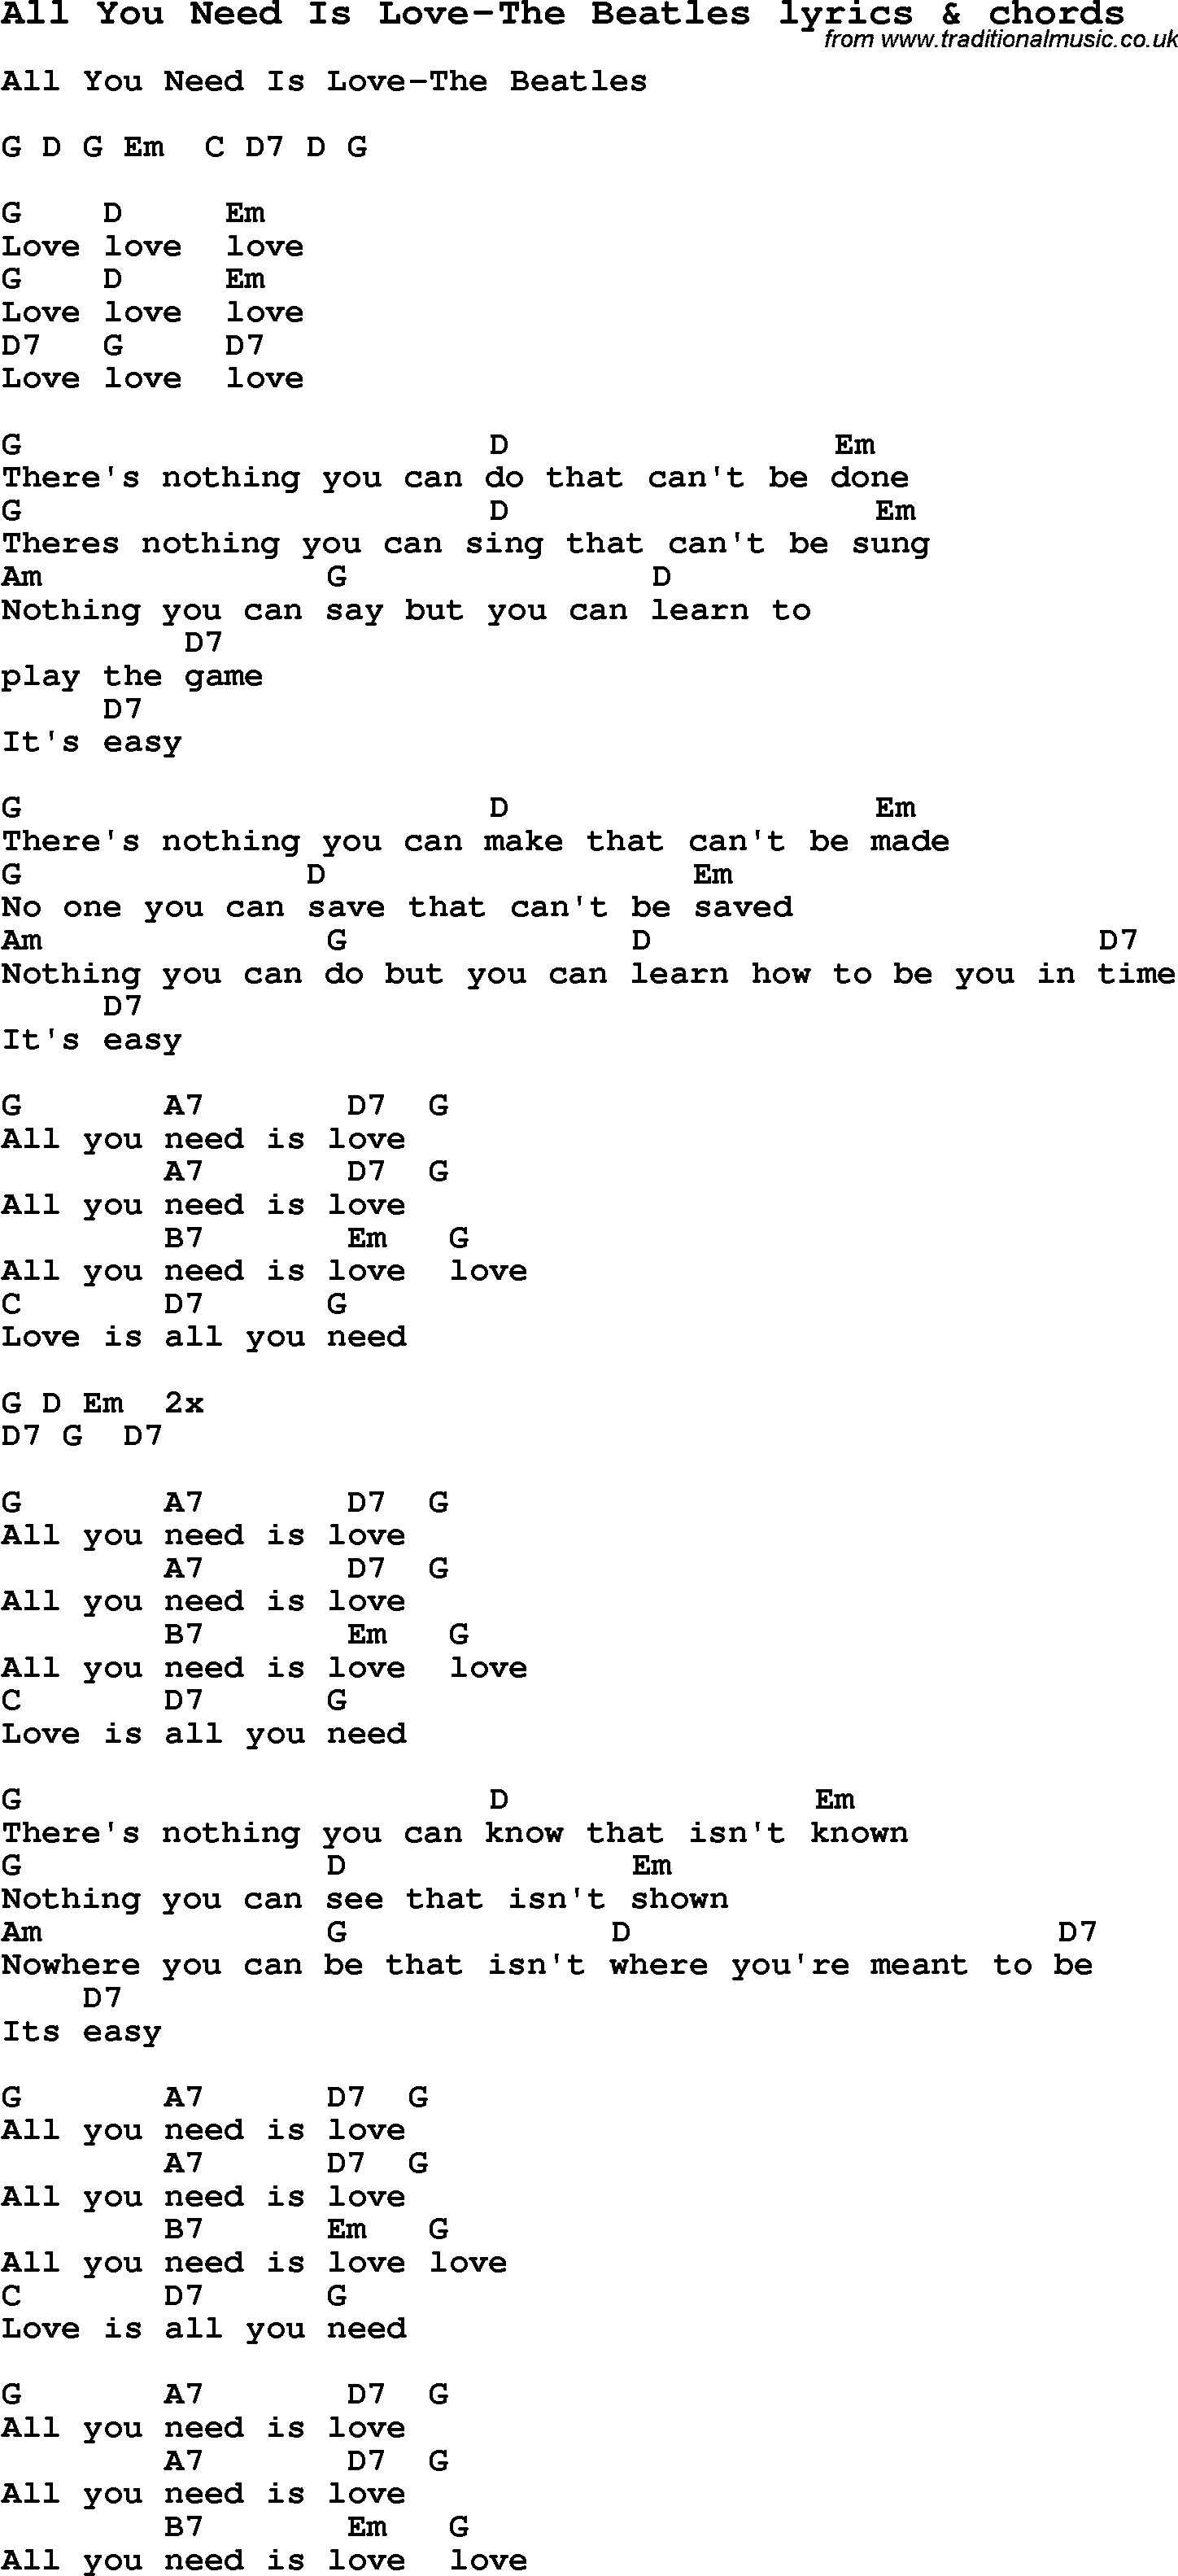 Love Song Lyrics For All You Need Is Love The Beatles With Chords